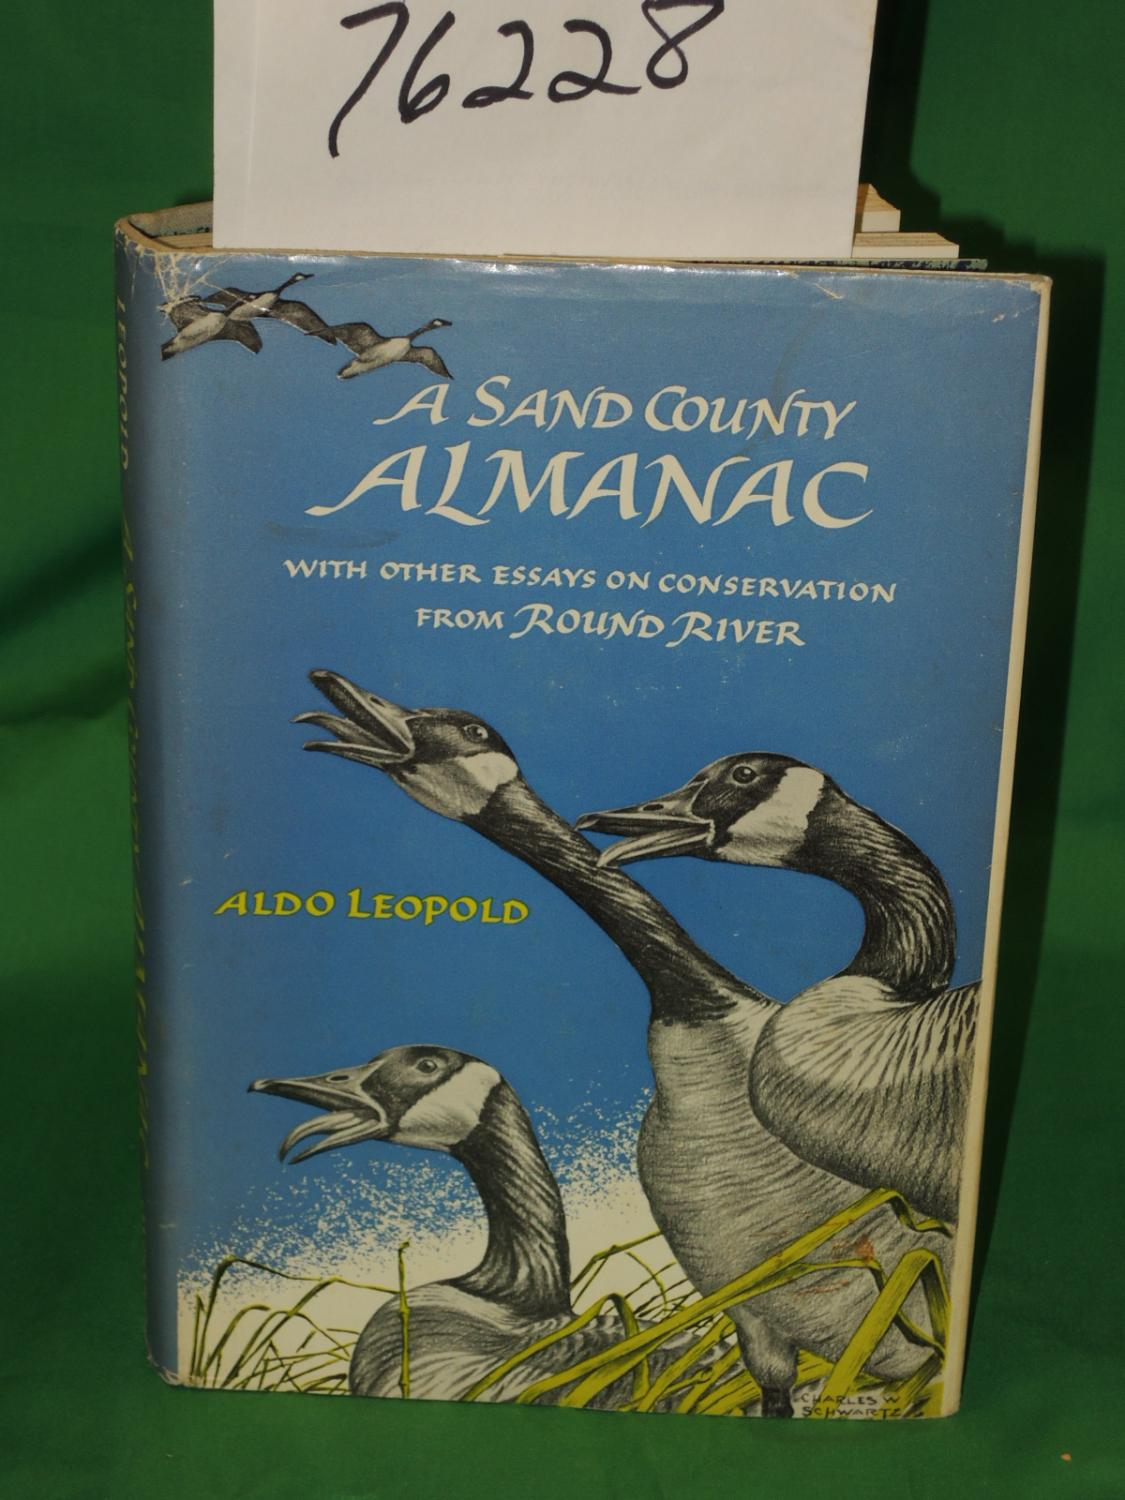 a sand county almanac questions Sand county almanac is as incisive and complex as it is trans  a sand county almanac also recasts our questions most of all, i hope that this volume will.